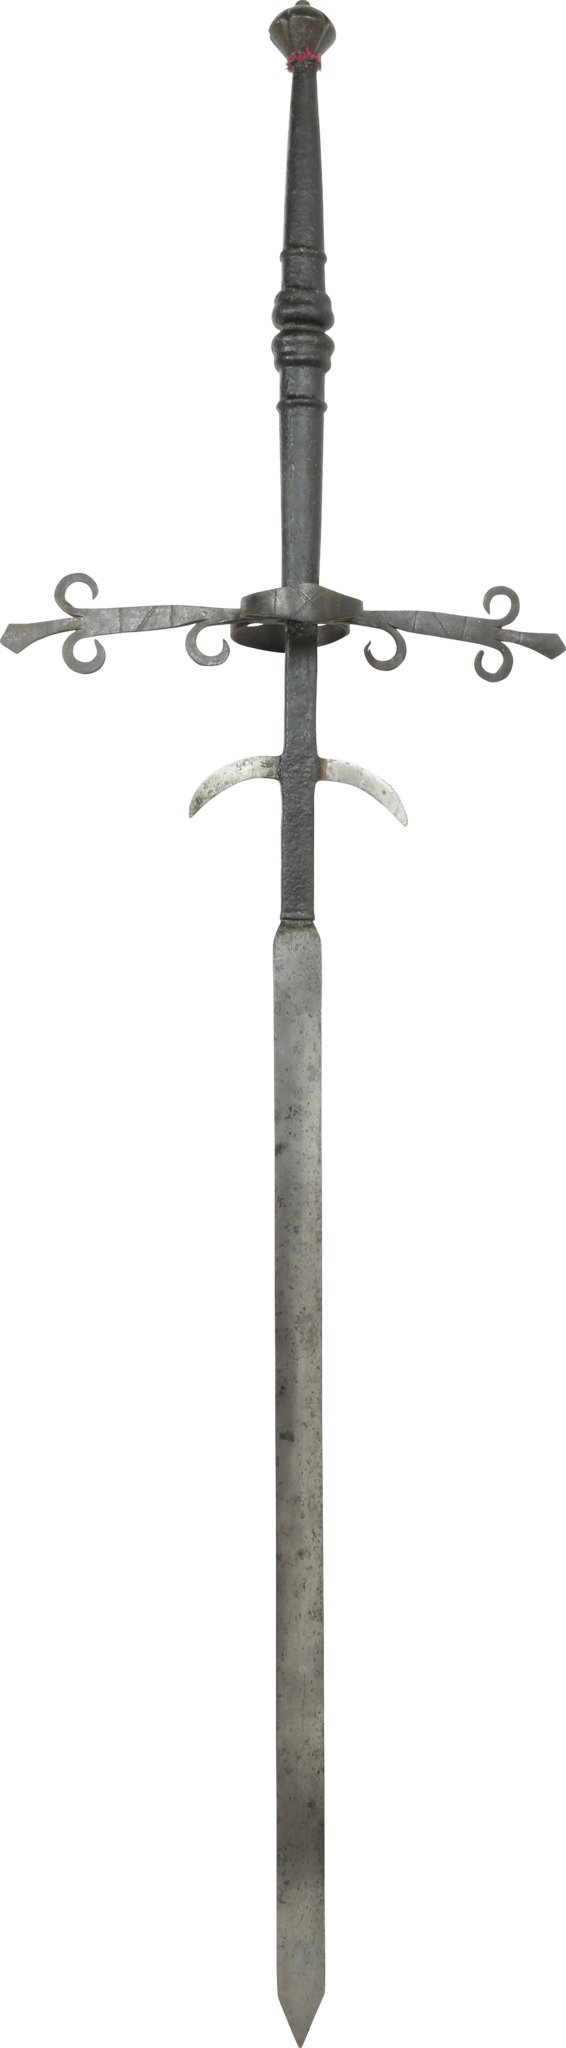 GERMAN TWO HAND LANDSKNECHT SWORD C.1580 - Fagan Arms